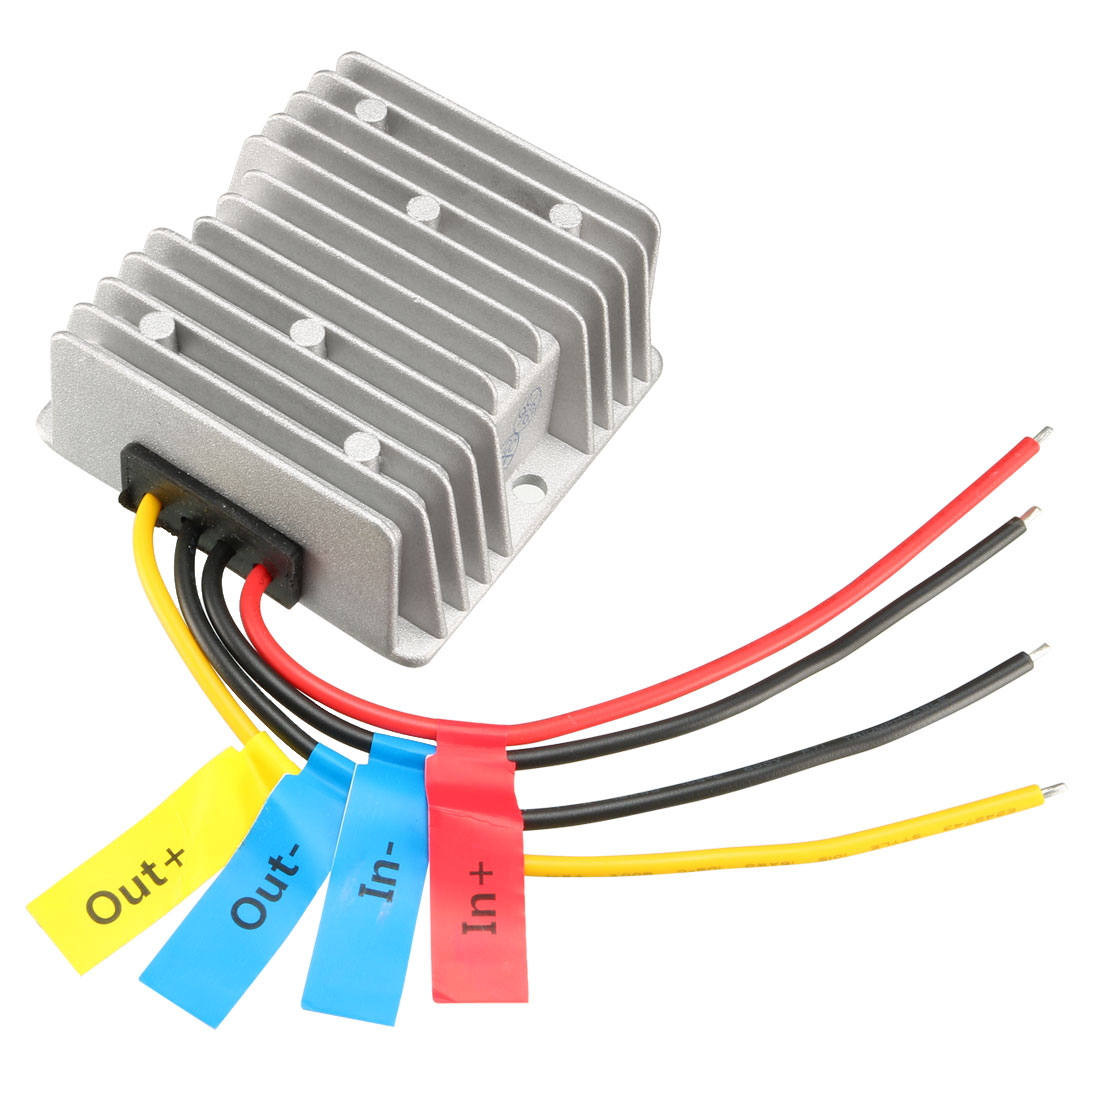 uxcell Voltage Converter Regulator DC/DC DC 9-32V to DC 13.8V 5A 69W Step Down/Up Transformer Waterproof